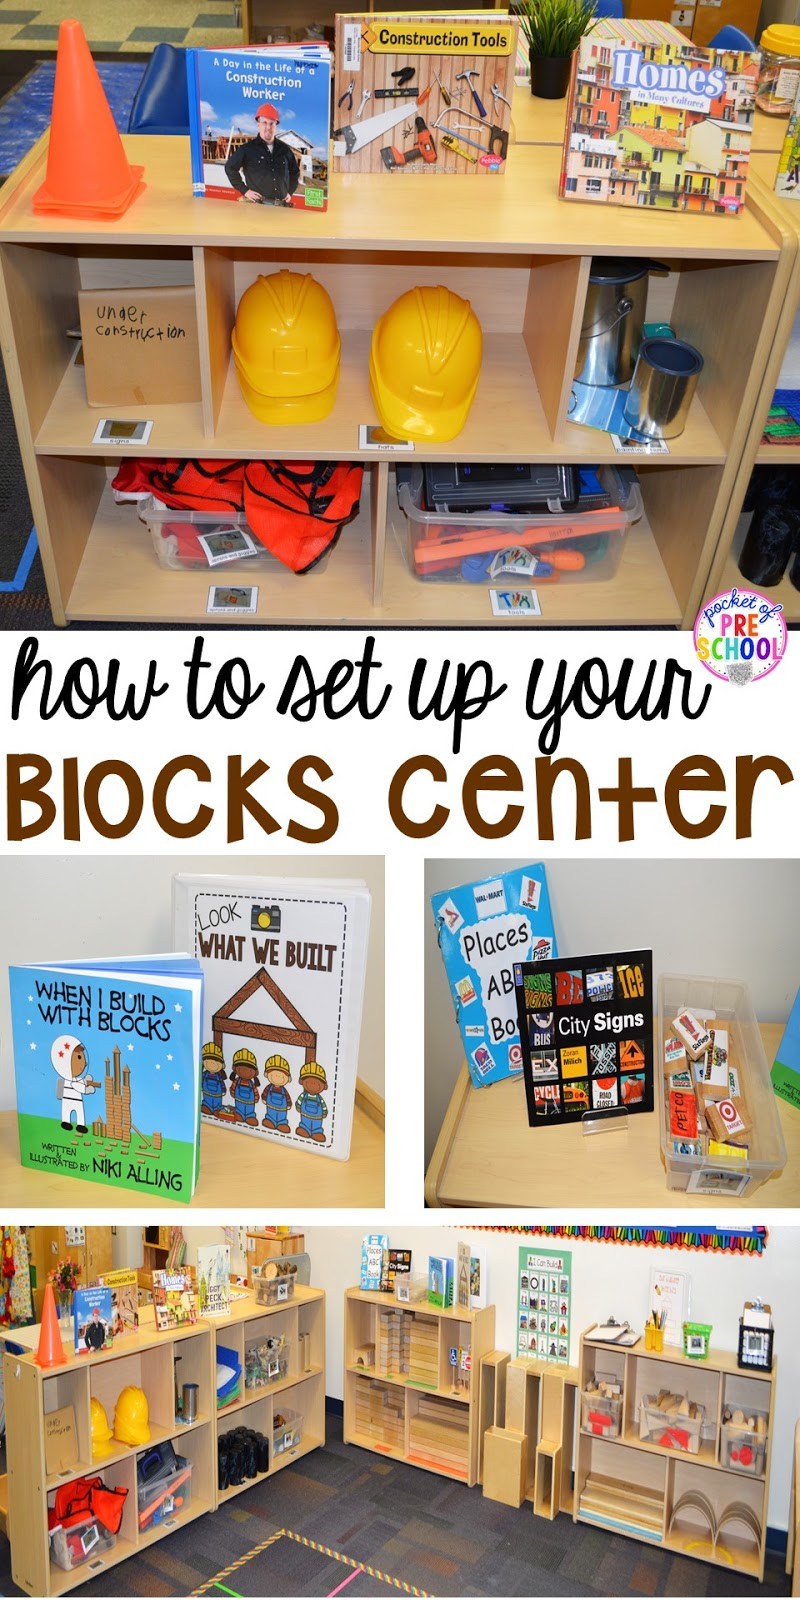 Early Childhood Classroom Design Ideas ~ How to set up the blocks center in an early childhood